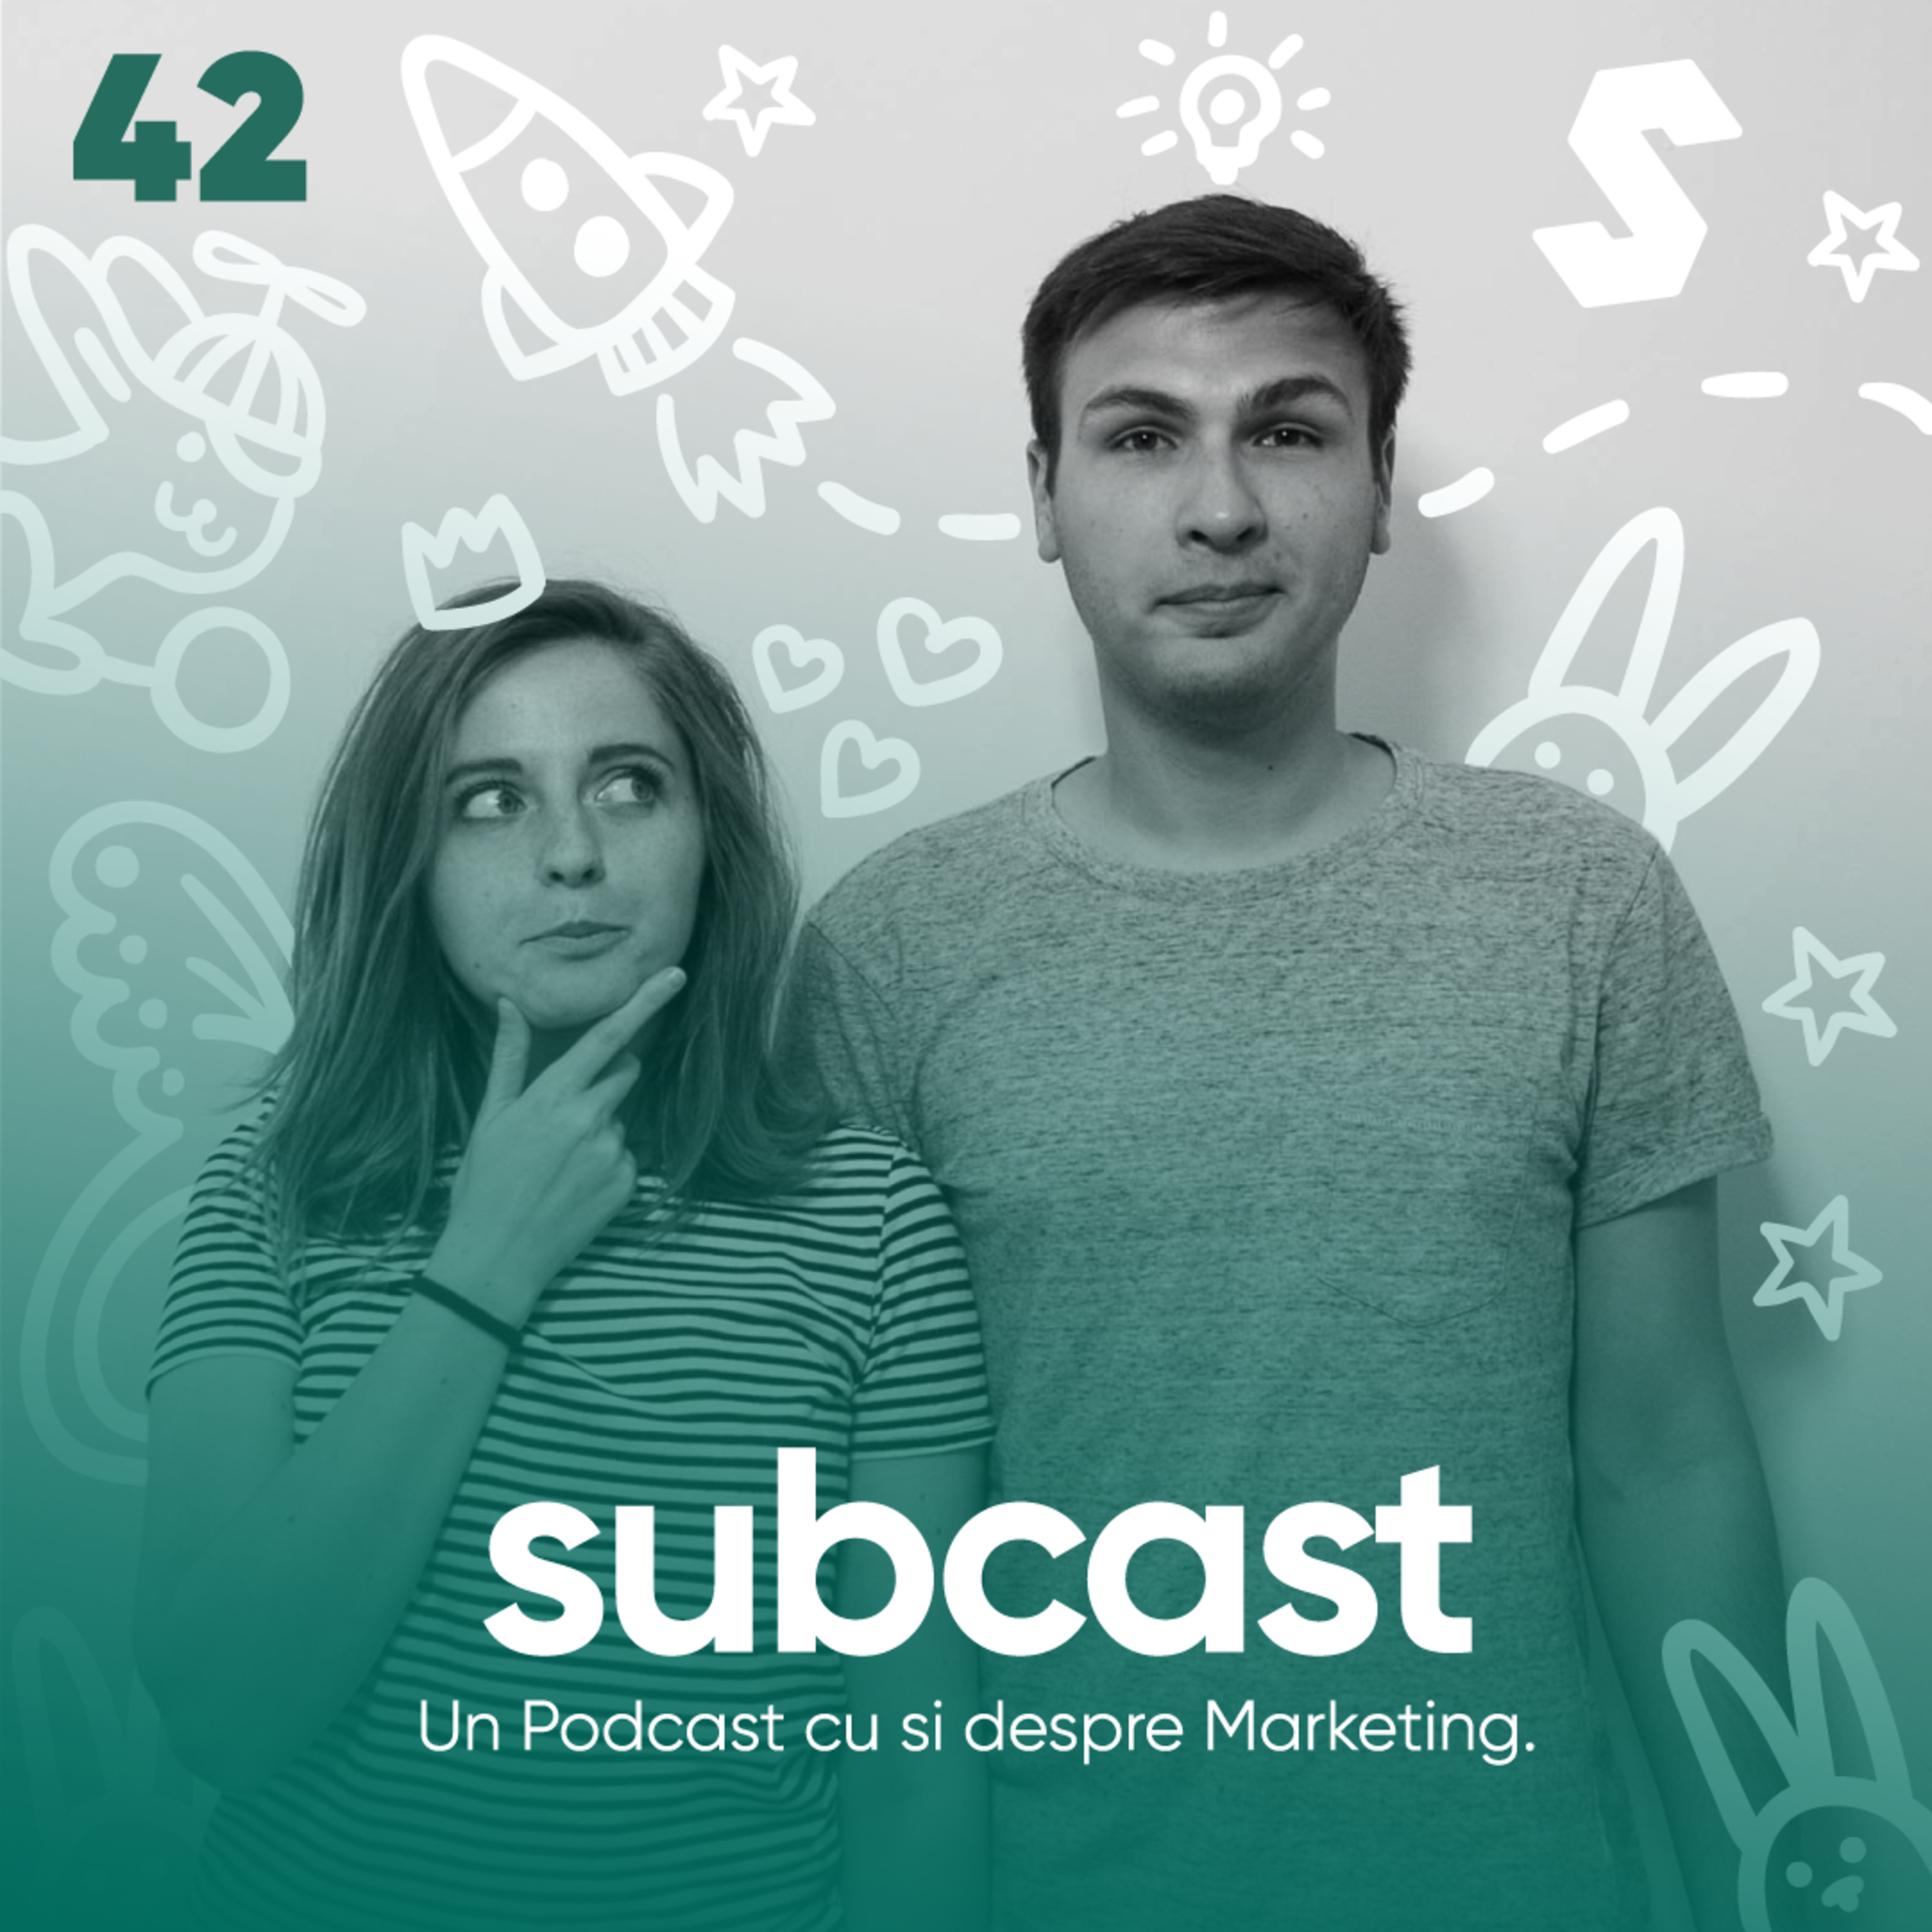 Subcast 42: Papuci Apple si Reclame Similare